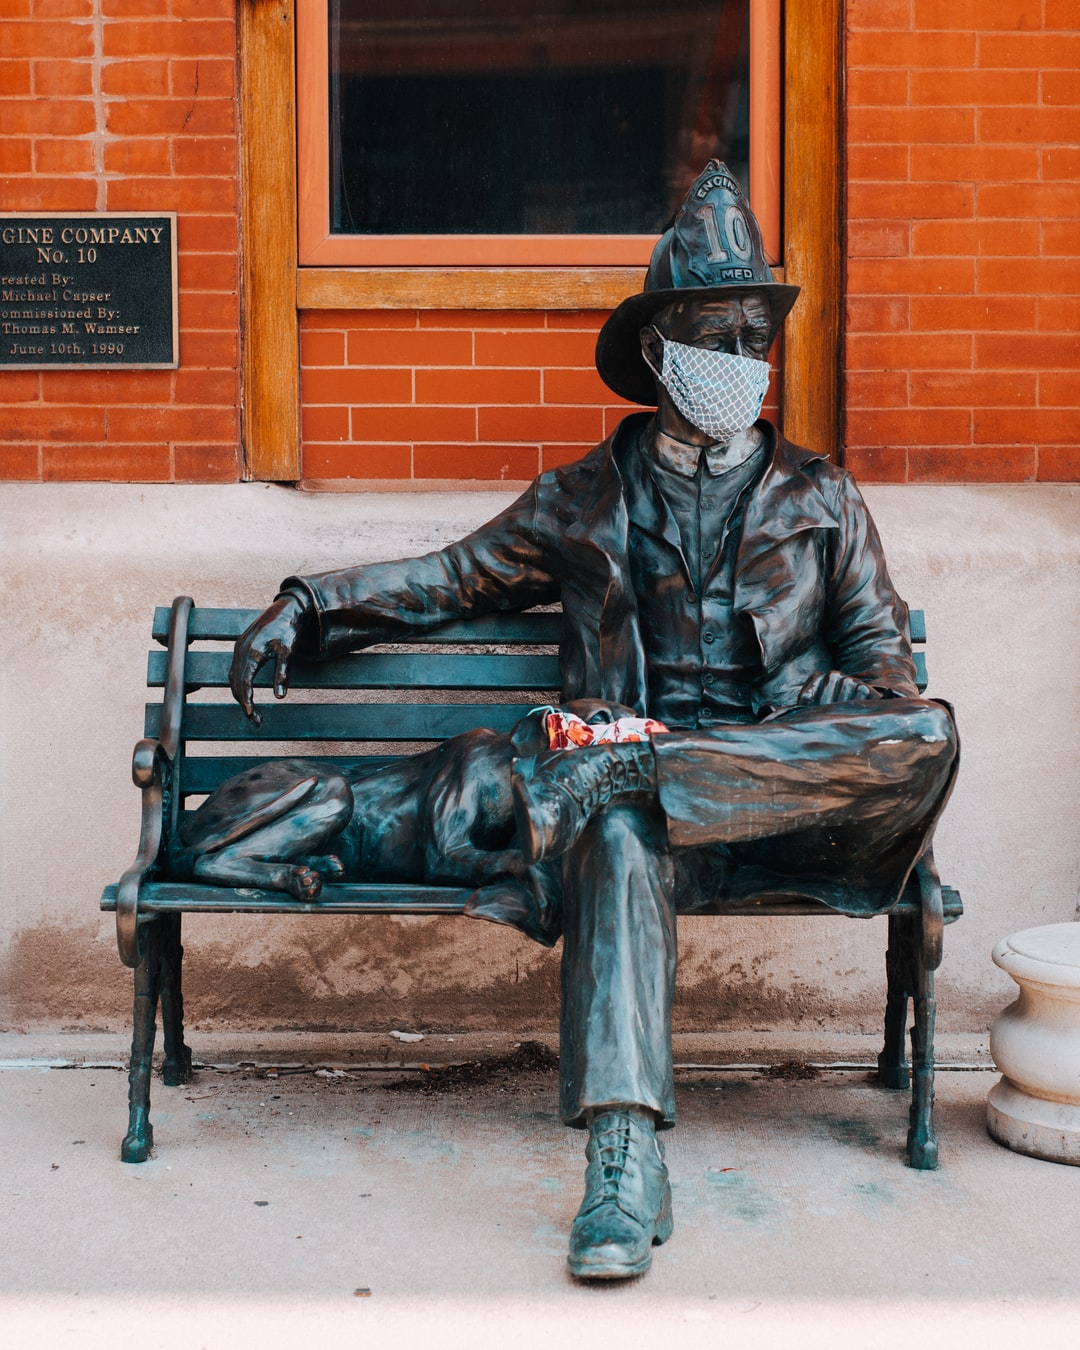 Masks were left on a statue of a fireman and his dog in Milwaukee's Third Ward. These are amongst several displays of solidarity during Covid-19.